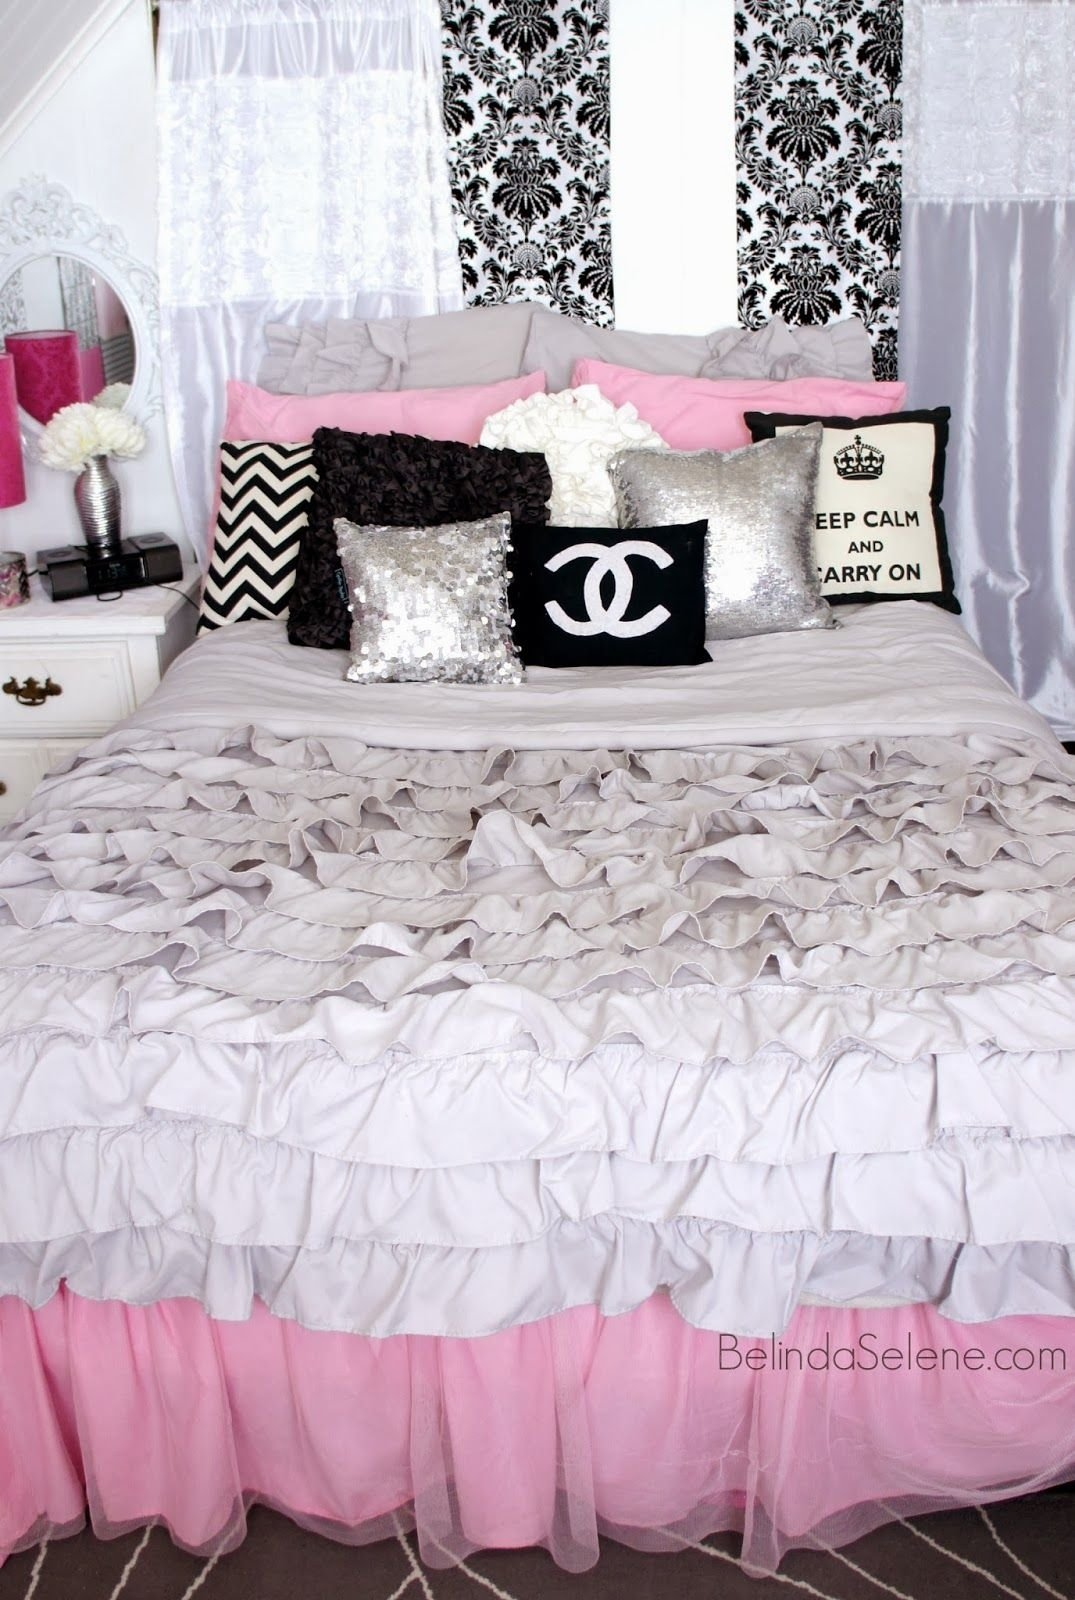 10 Nice Pink Black And White Bedroom Ideas chic pink white and black bedroom chanel themed room www 2020